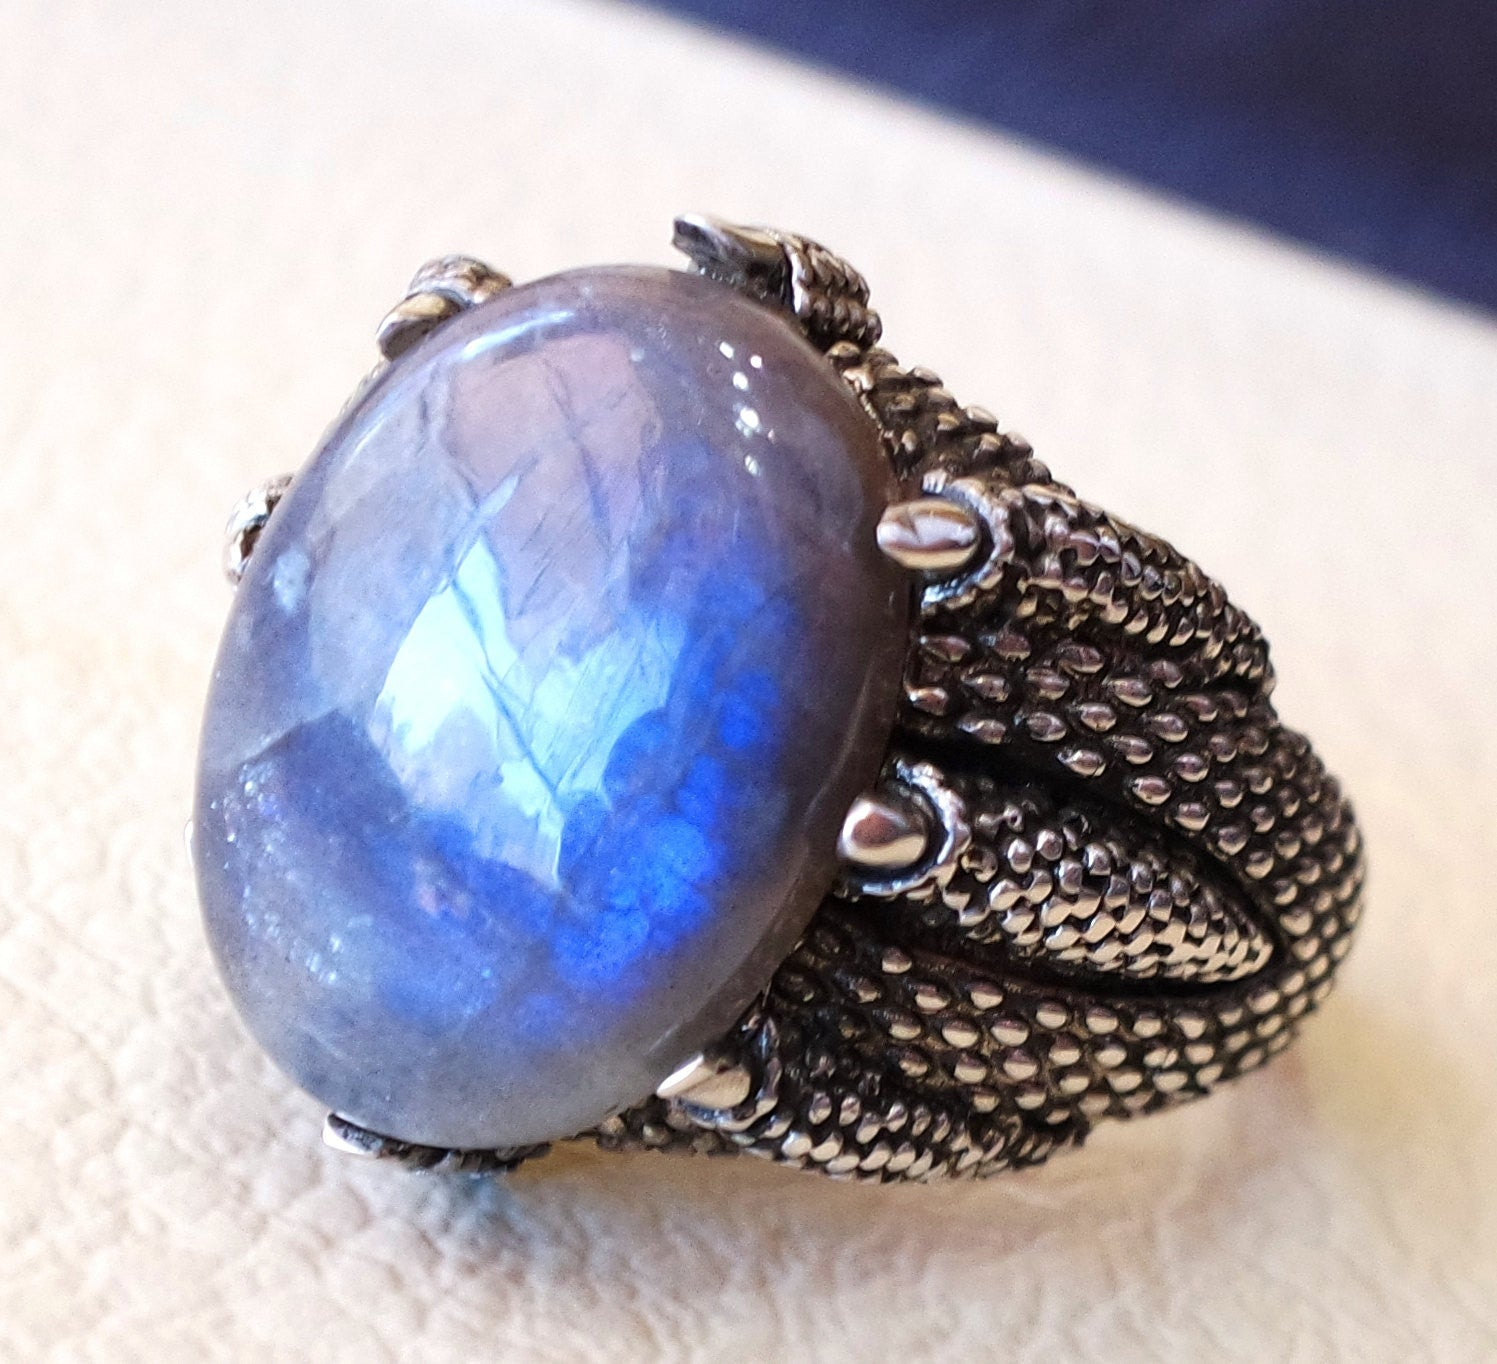 flashy blue labradorite huge men eagle clay ring sterling silver 925 color unique stone all sizes jewelry fast shipping oxidized style